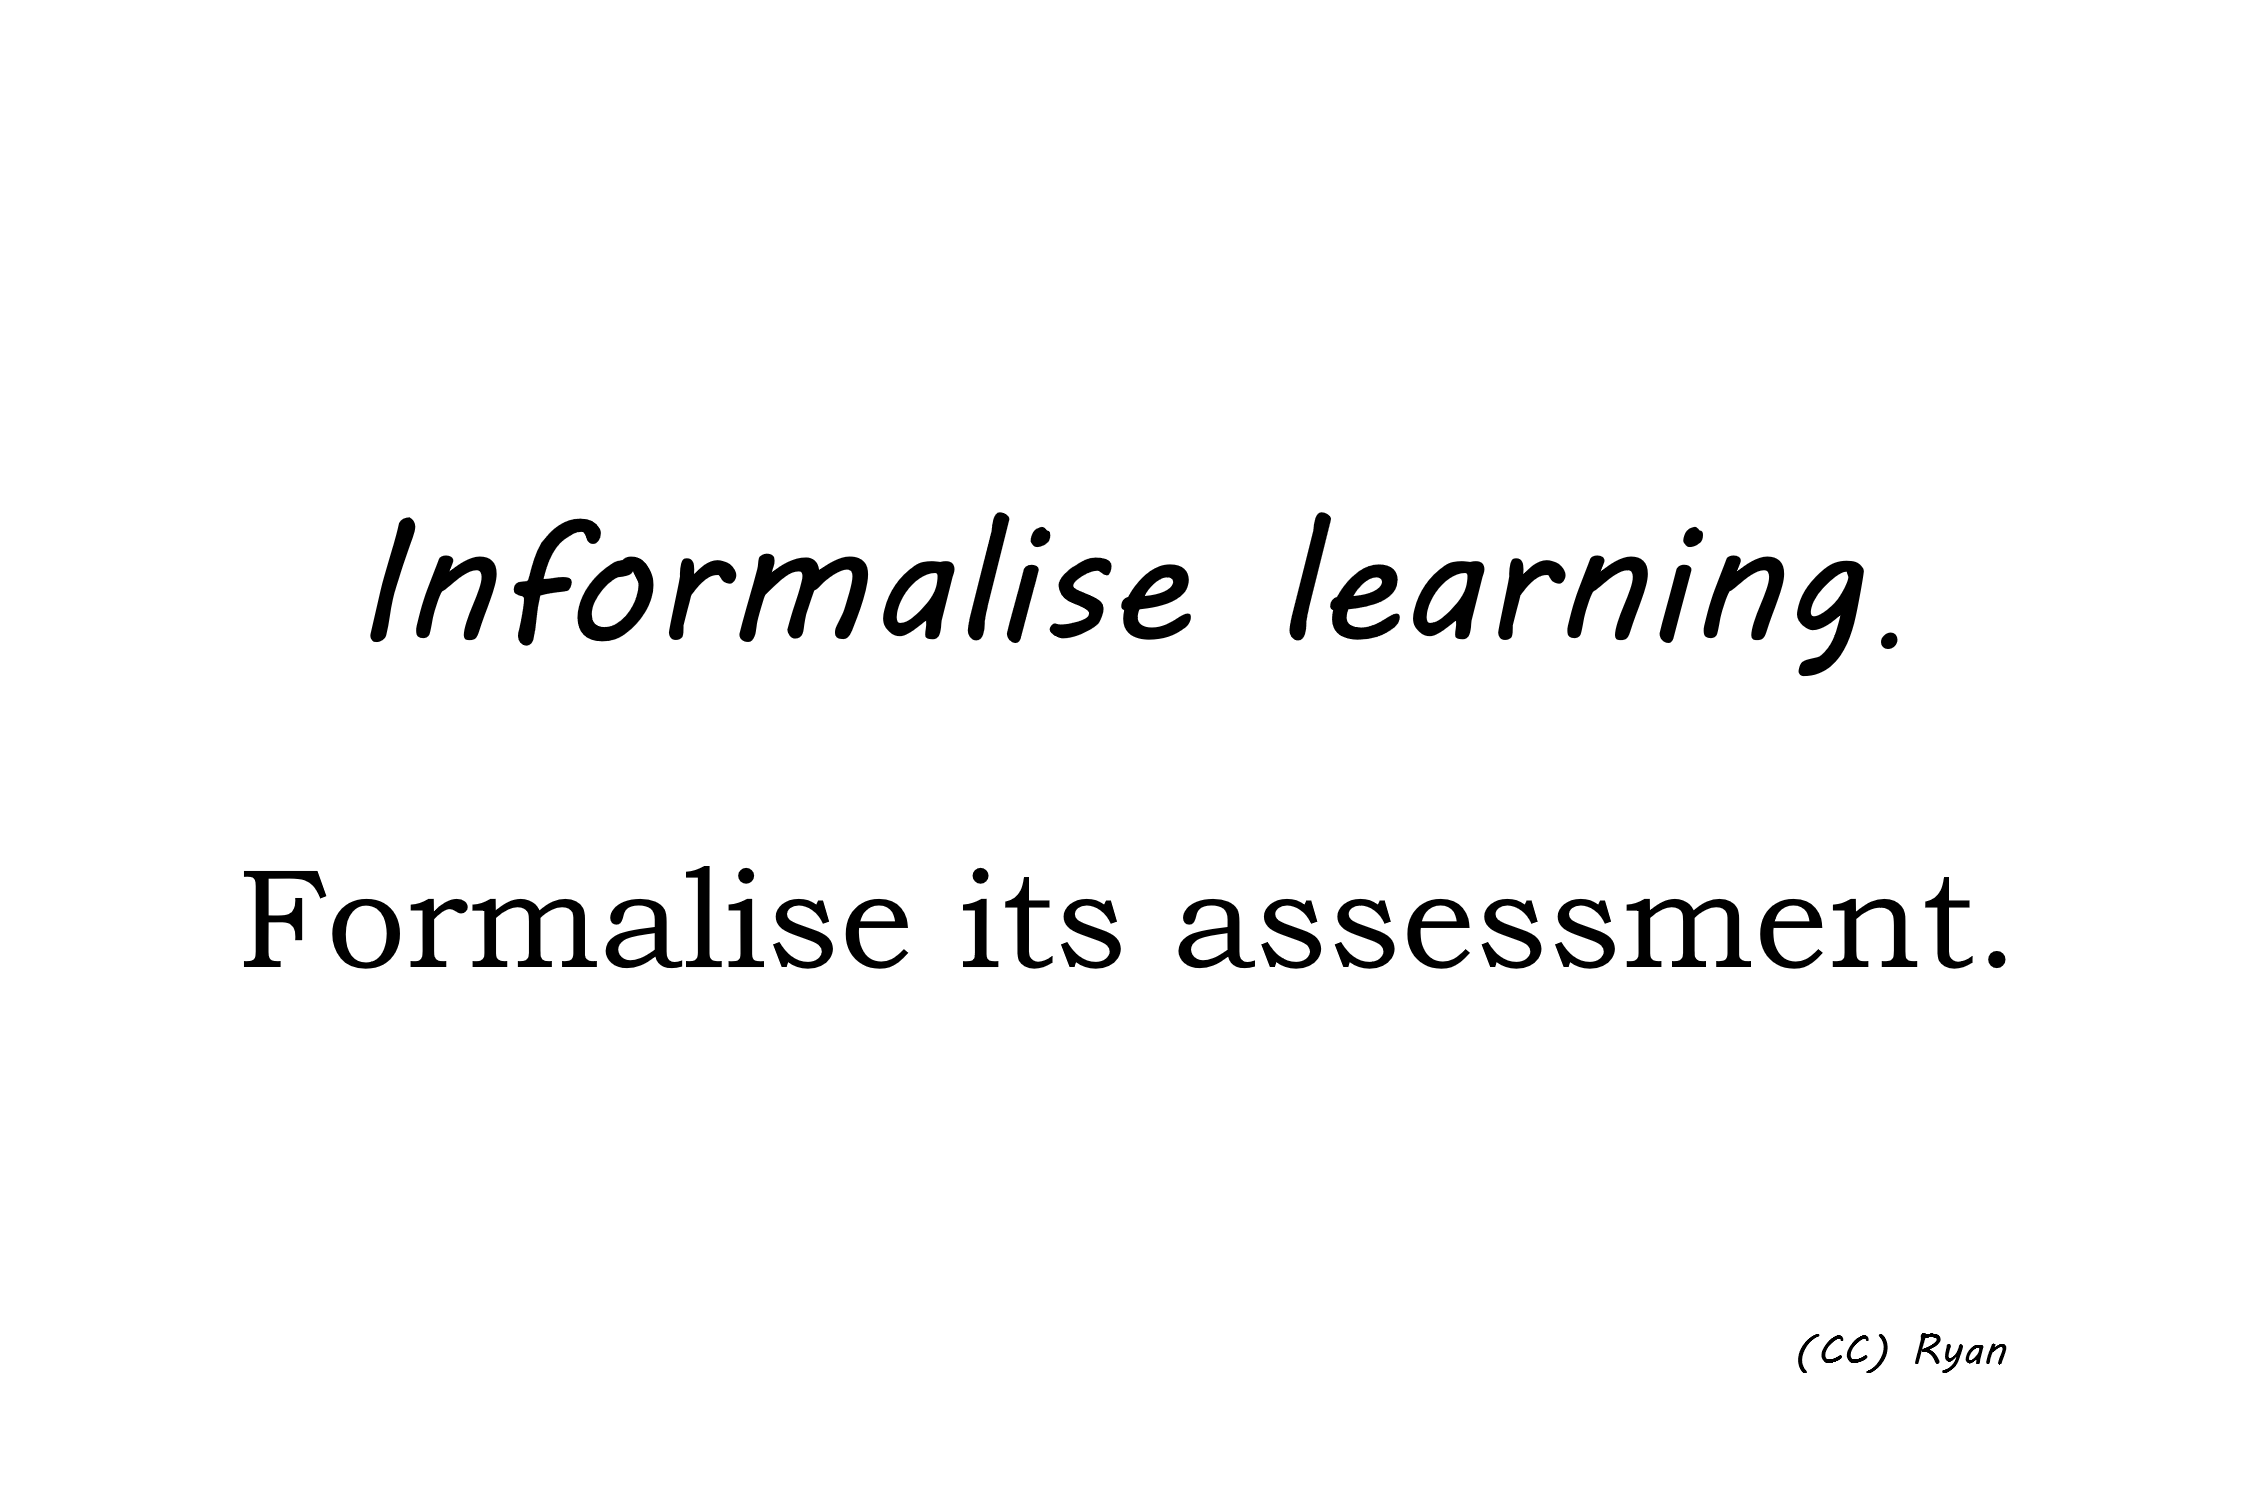 Informalise learning. Formalise its assessment.